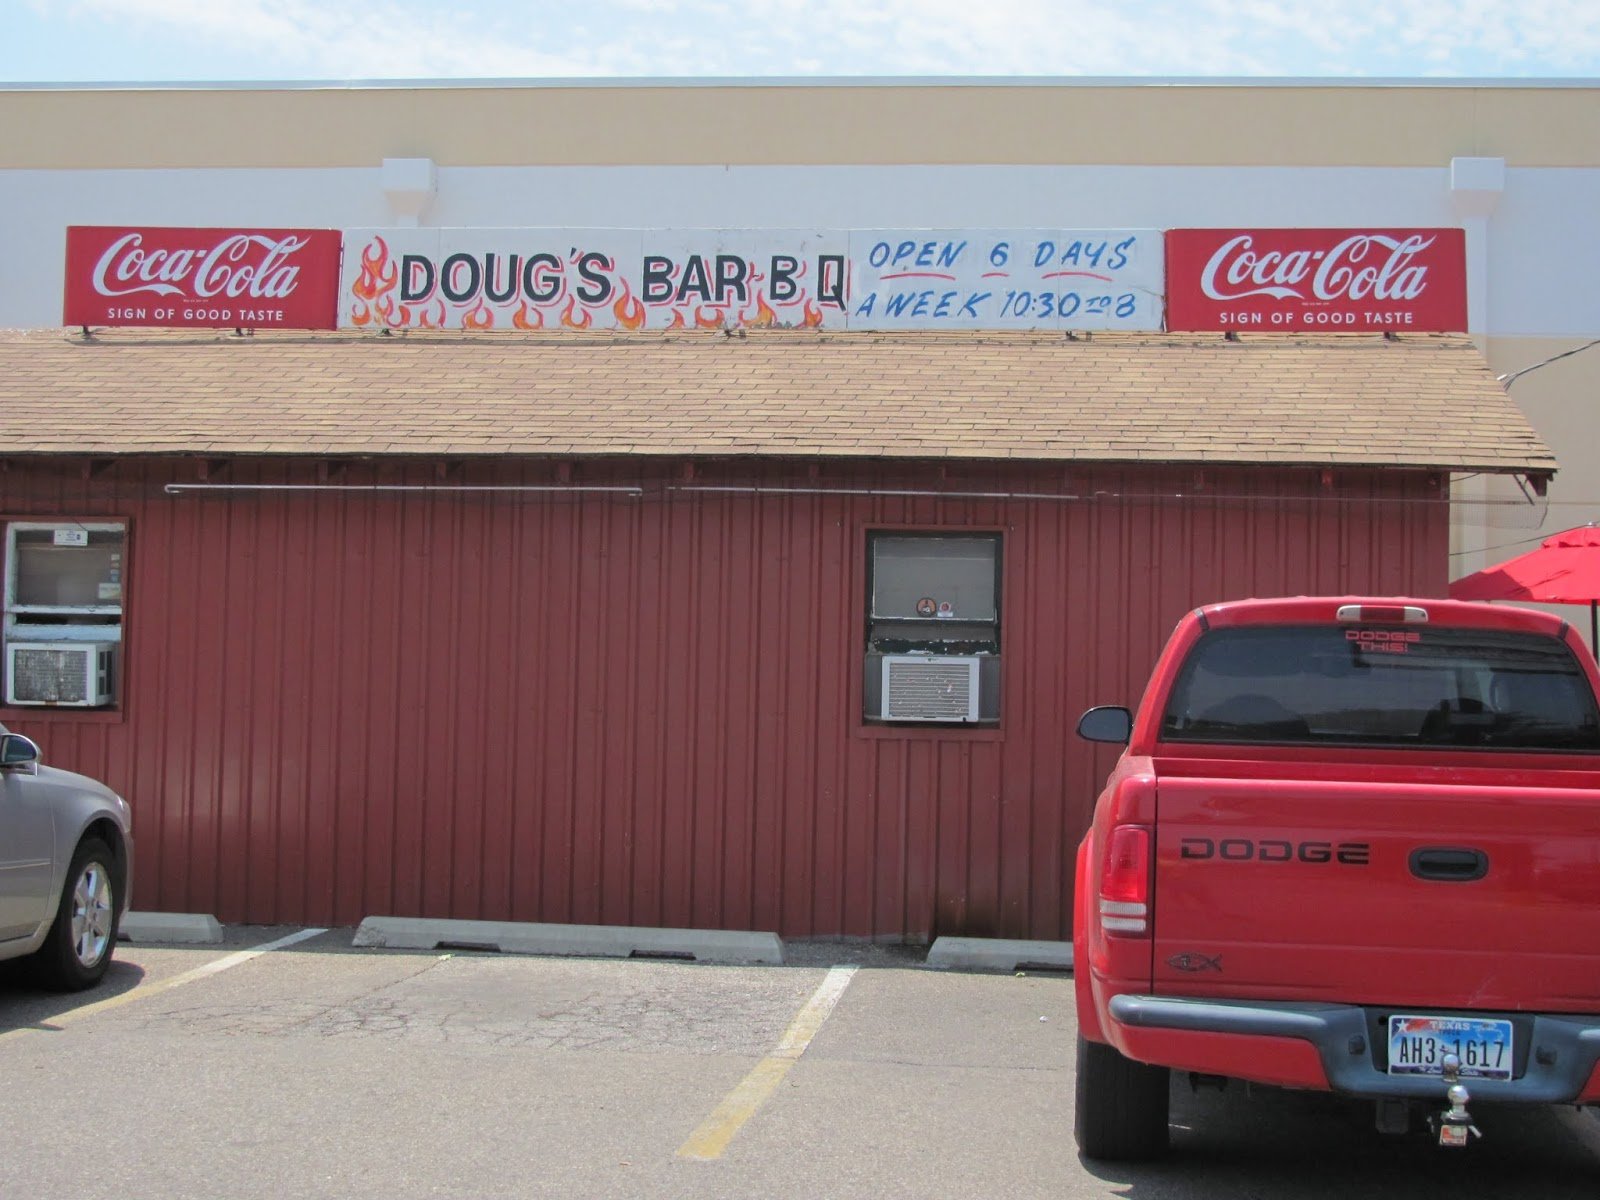 Doug's Bar-B-Q restaurant in Amarillo, Texas